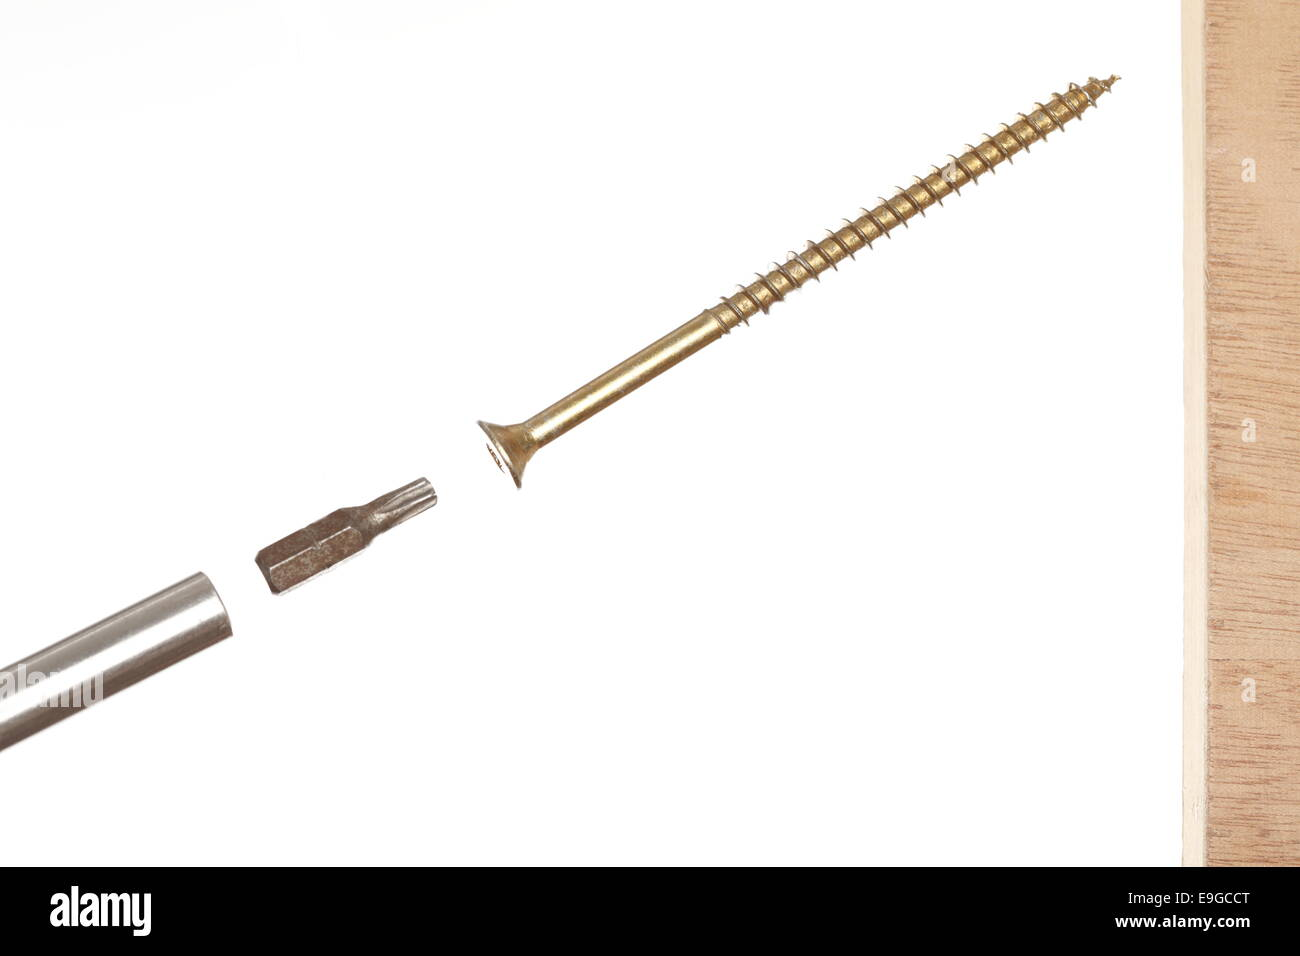 construct - Stock Image